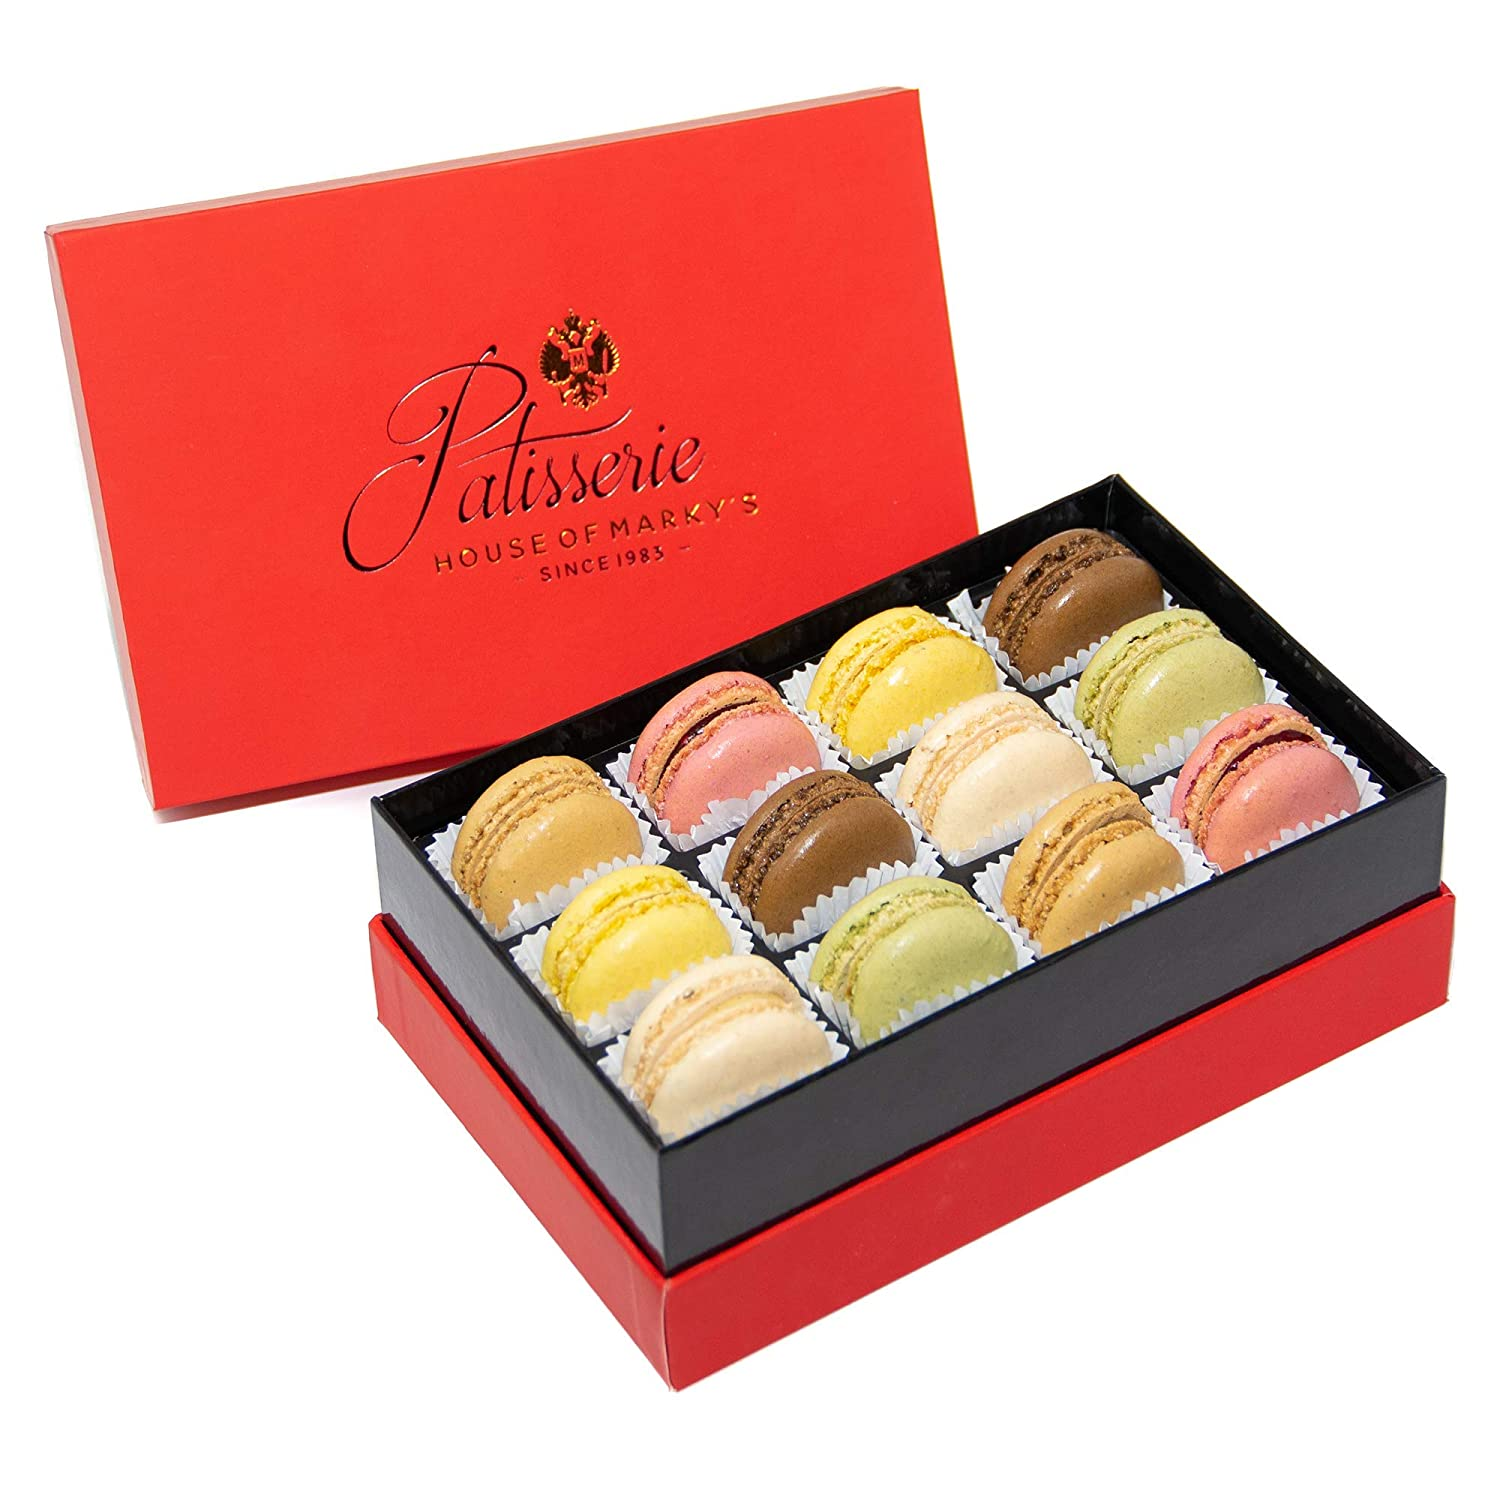 Amazon.com  French Almond Macarons Gift Box - 12 pcs - Assorted Macaroons Cookies - Imported From France  Grocery u0026 Gourmet Food  sc 1 st  Amazon.com & Amazon.com : French Almond Macarons Gift Box - 12 pcs - Assorted ...